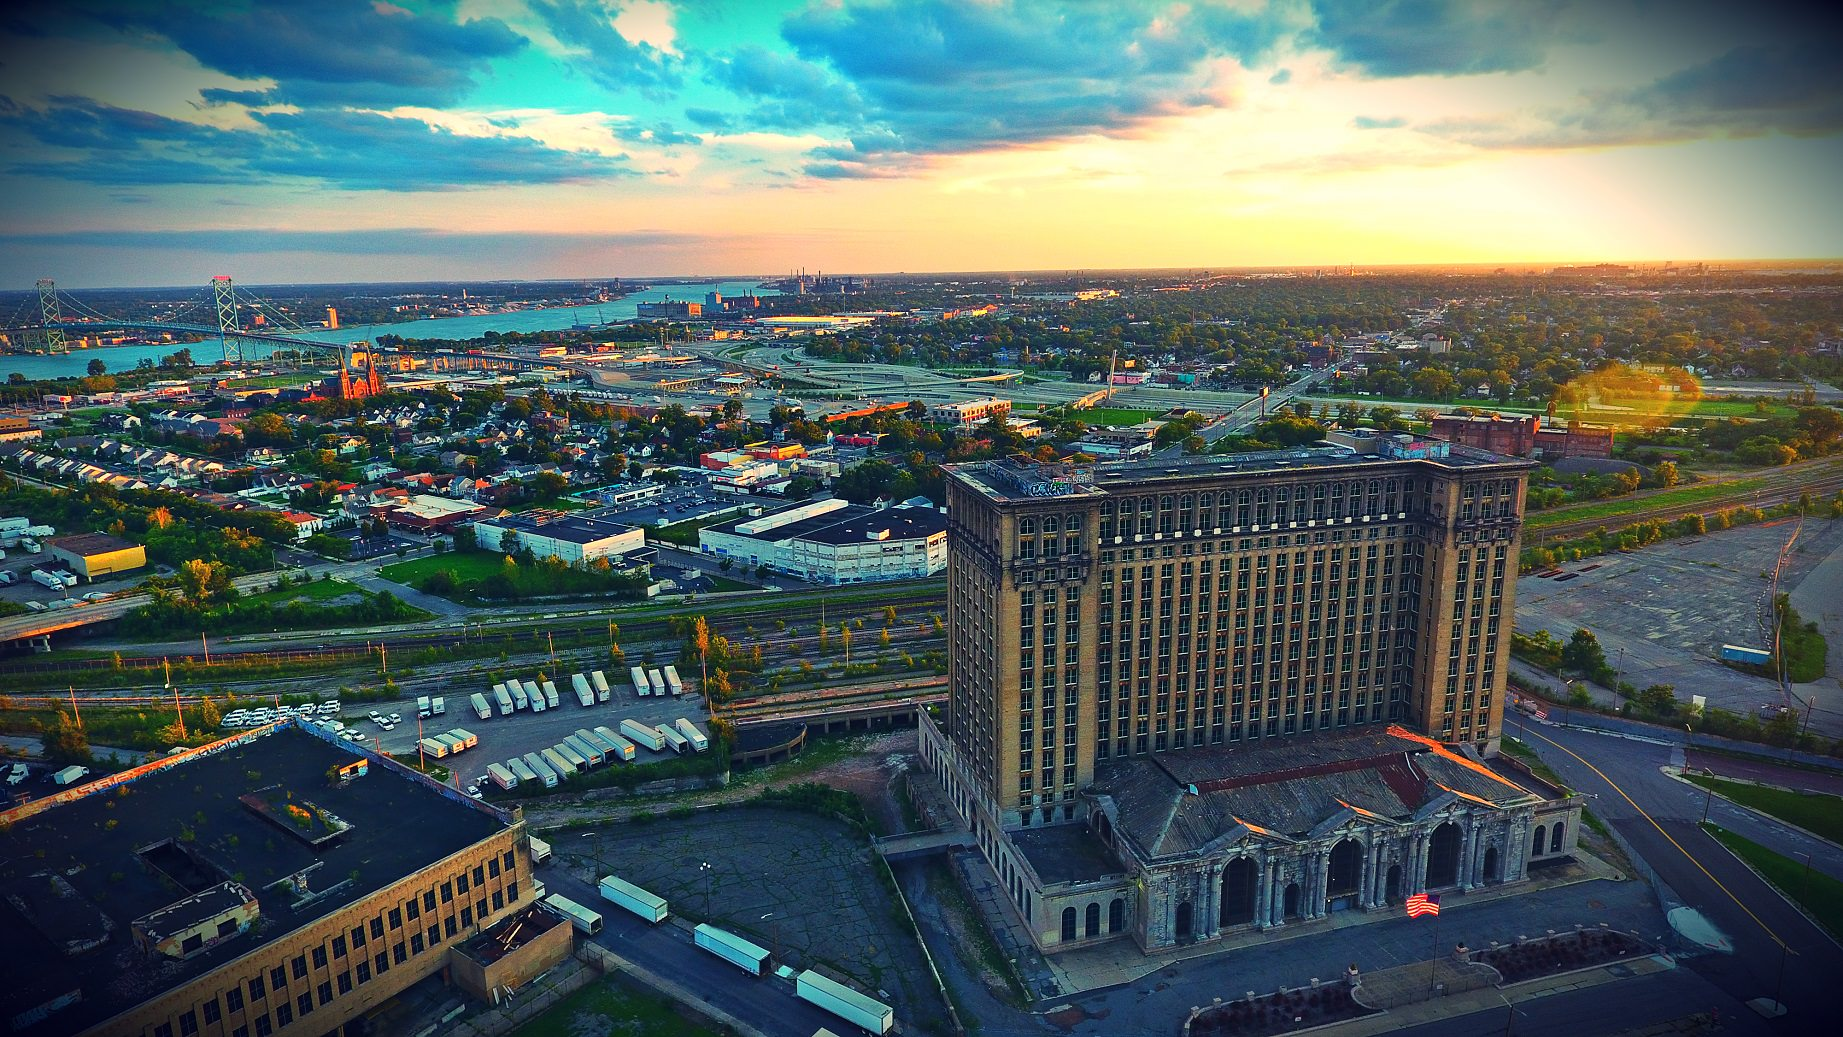 Michigan Train Station - Detroit